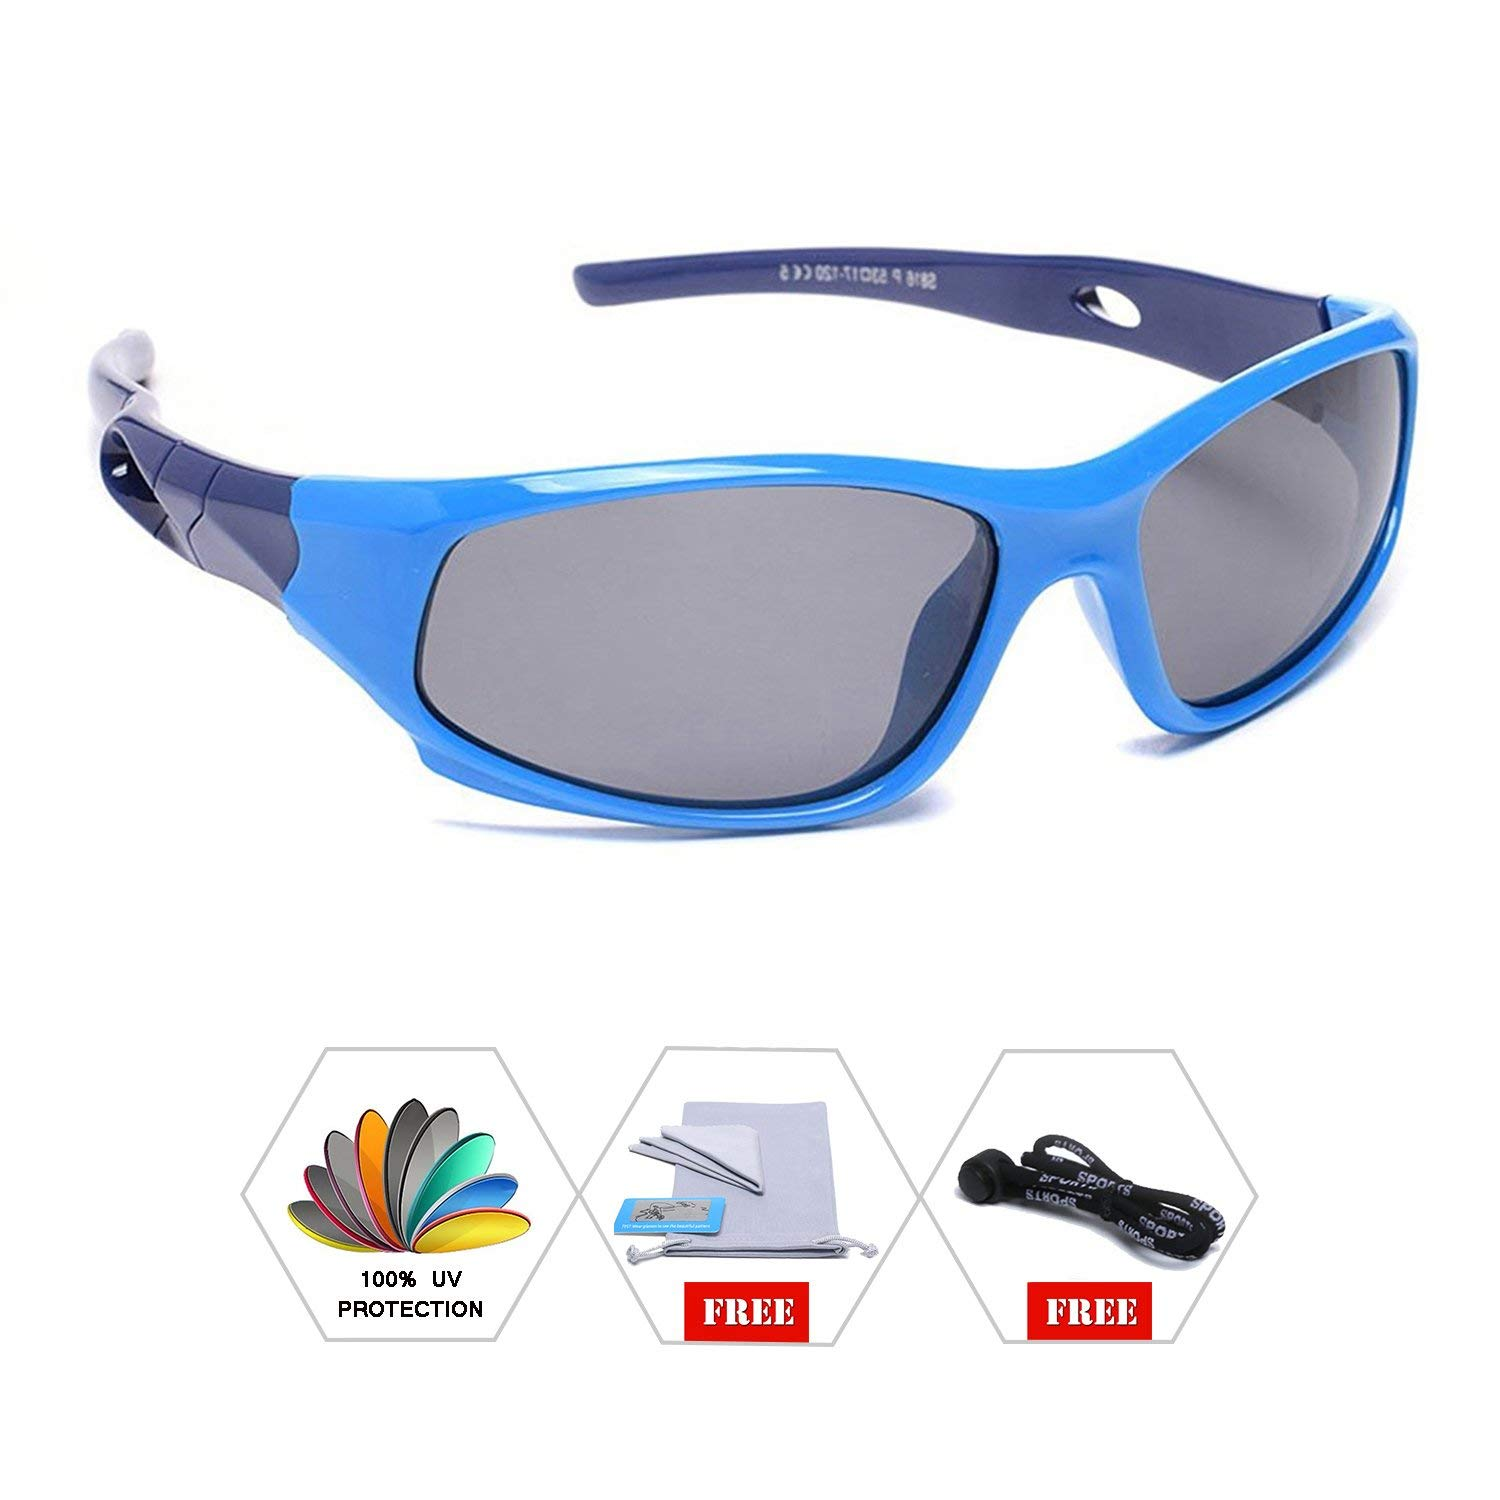 5a37239e7e Get Quotations · AODUOKE Sports Polarized Kids Sunglasses For Boys Girls  Children Mirrored Lens Sunglasses With Strap